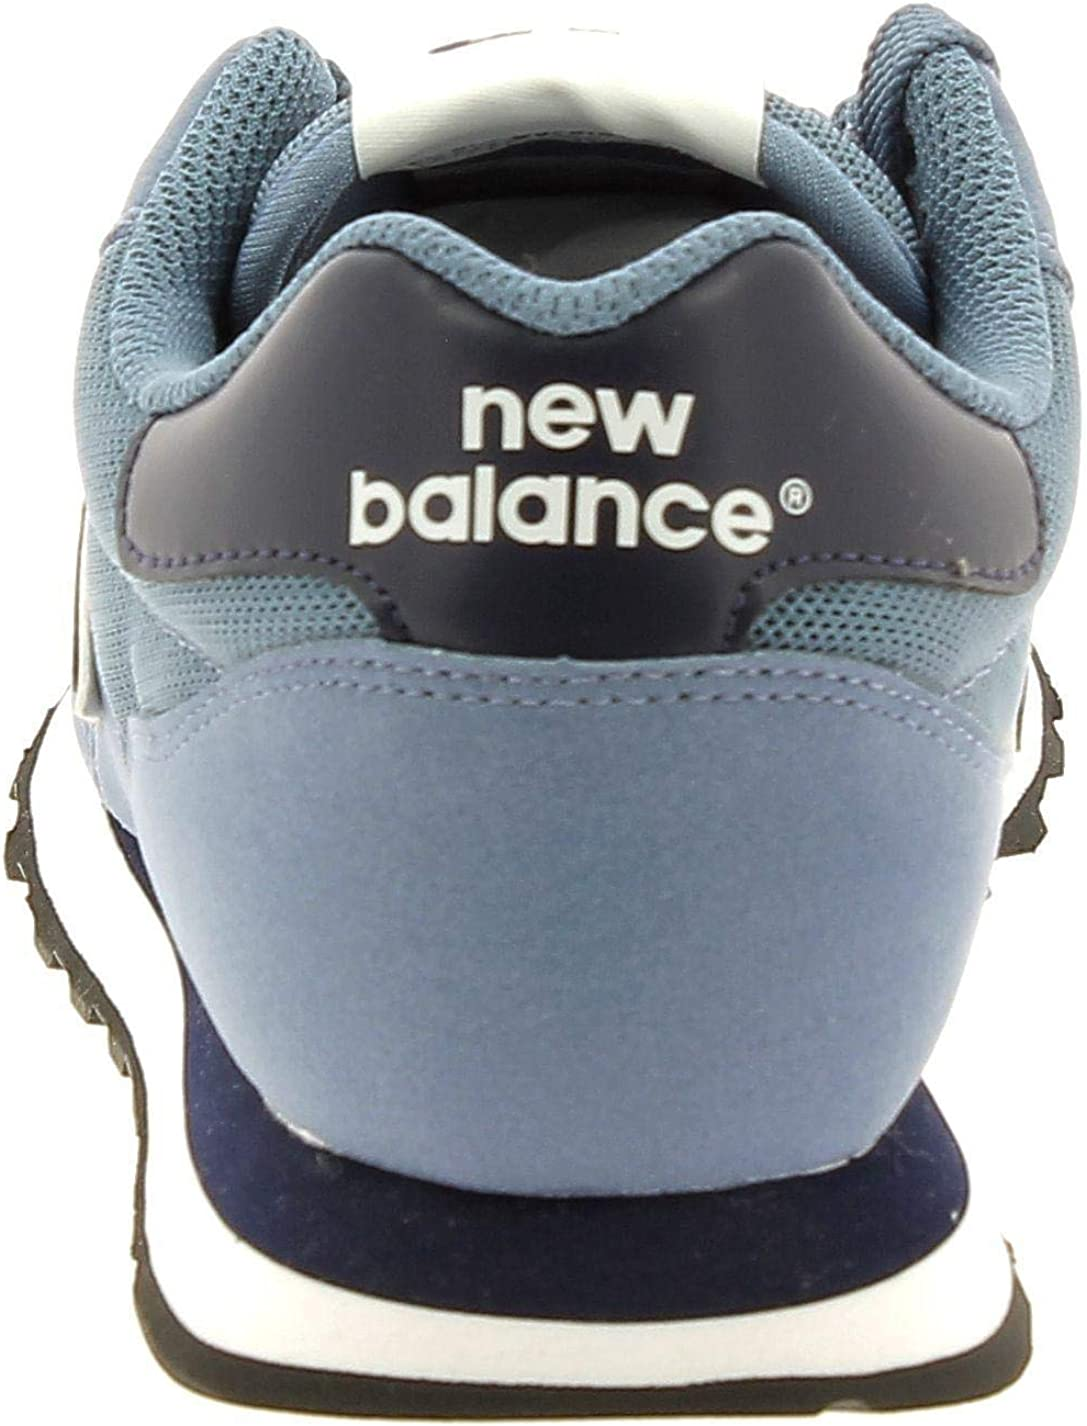 New Balance GM500V1, Zapatillas Hombre, Azul (Dusty Blue), 40.5 EU: Amazon.es: Zapatos y complementos